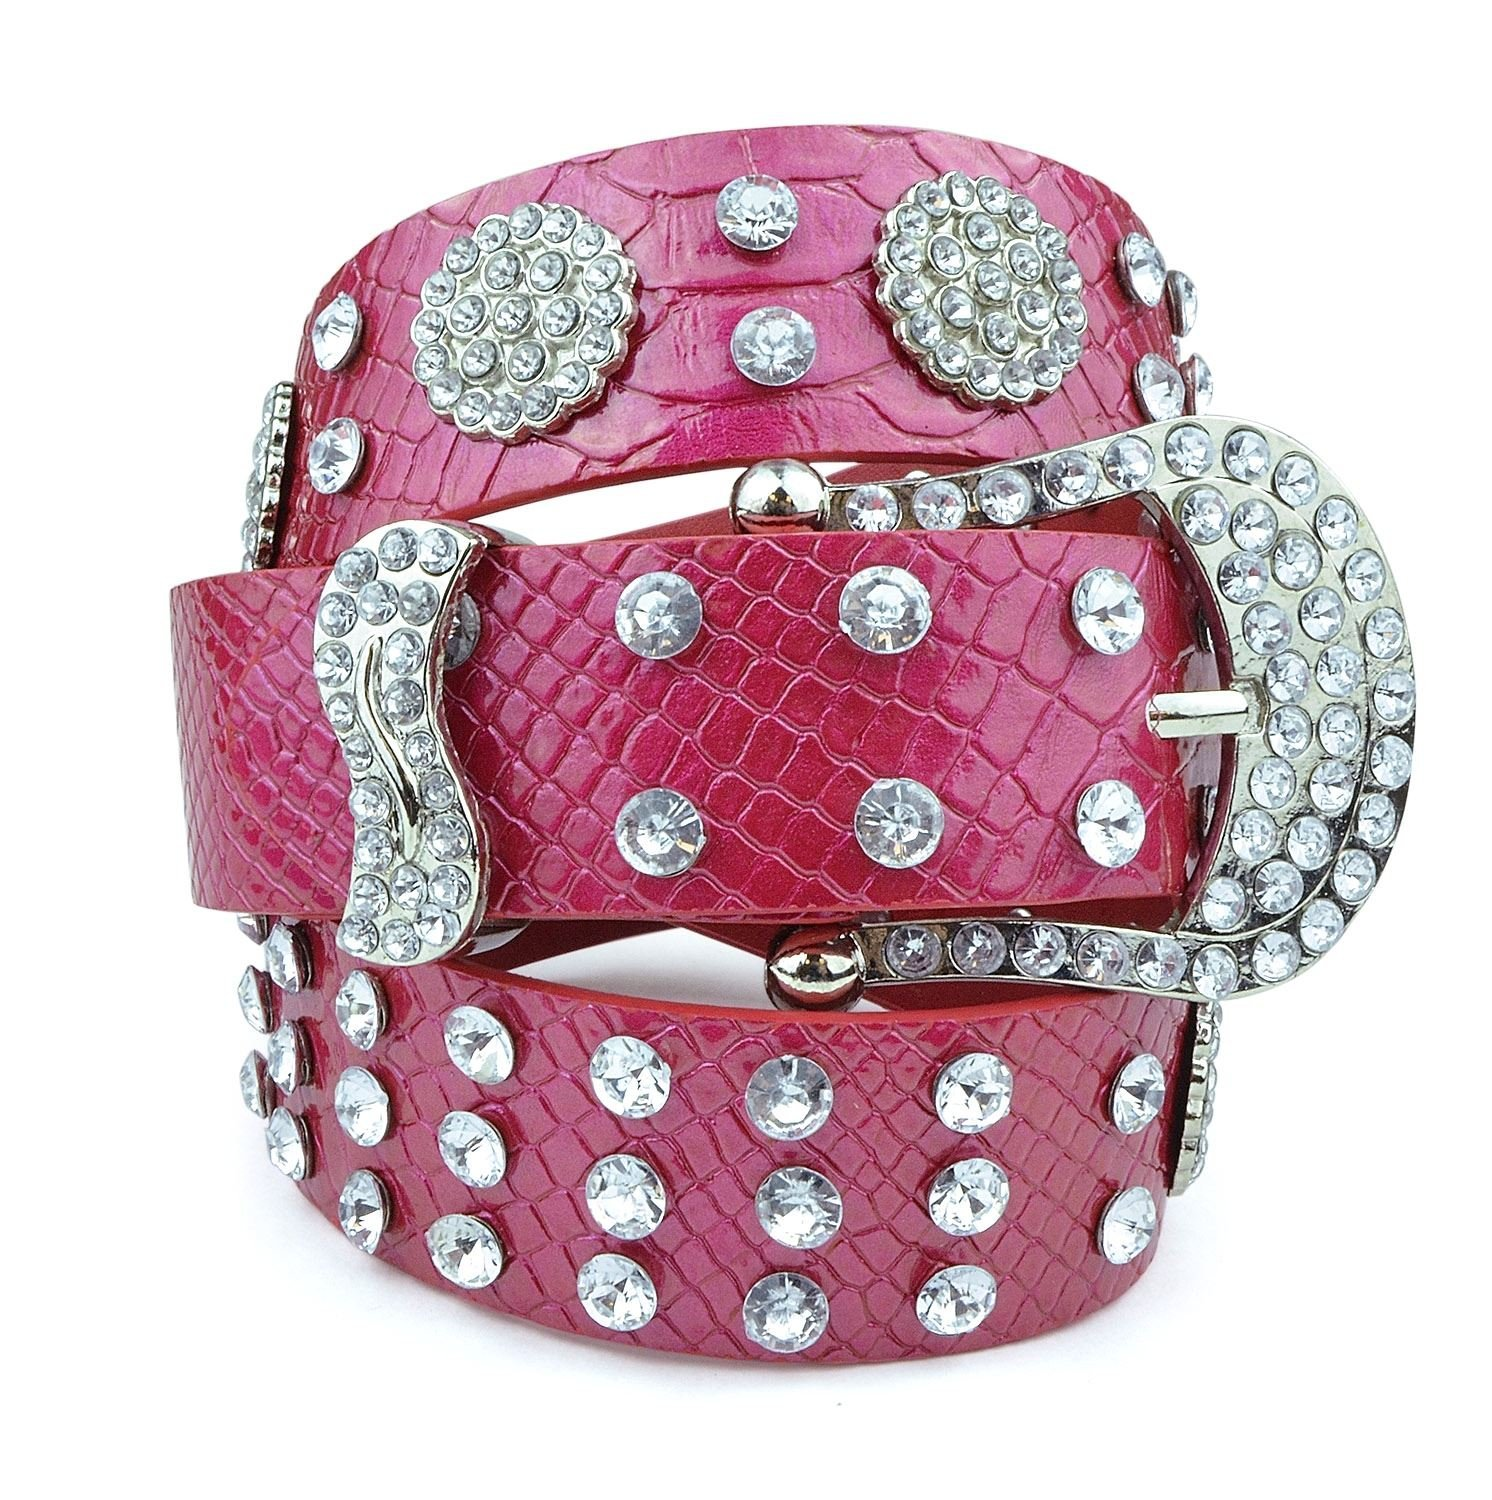 Womens Studded Belts - Multiple Colors & Designs - Western Cowgirl PU Leather Rhinestone Belt with Bling Buckles by Belle Donne - Red-IV